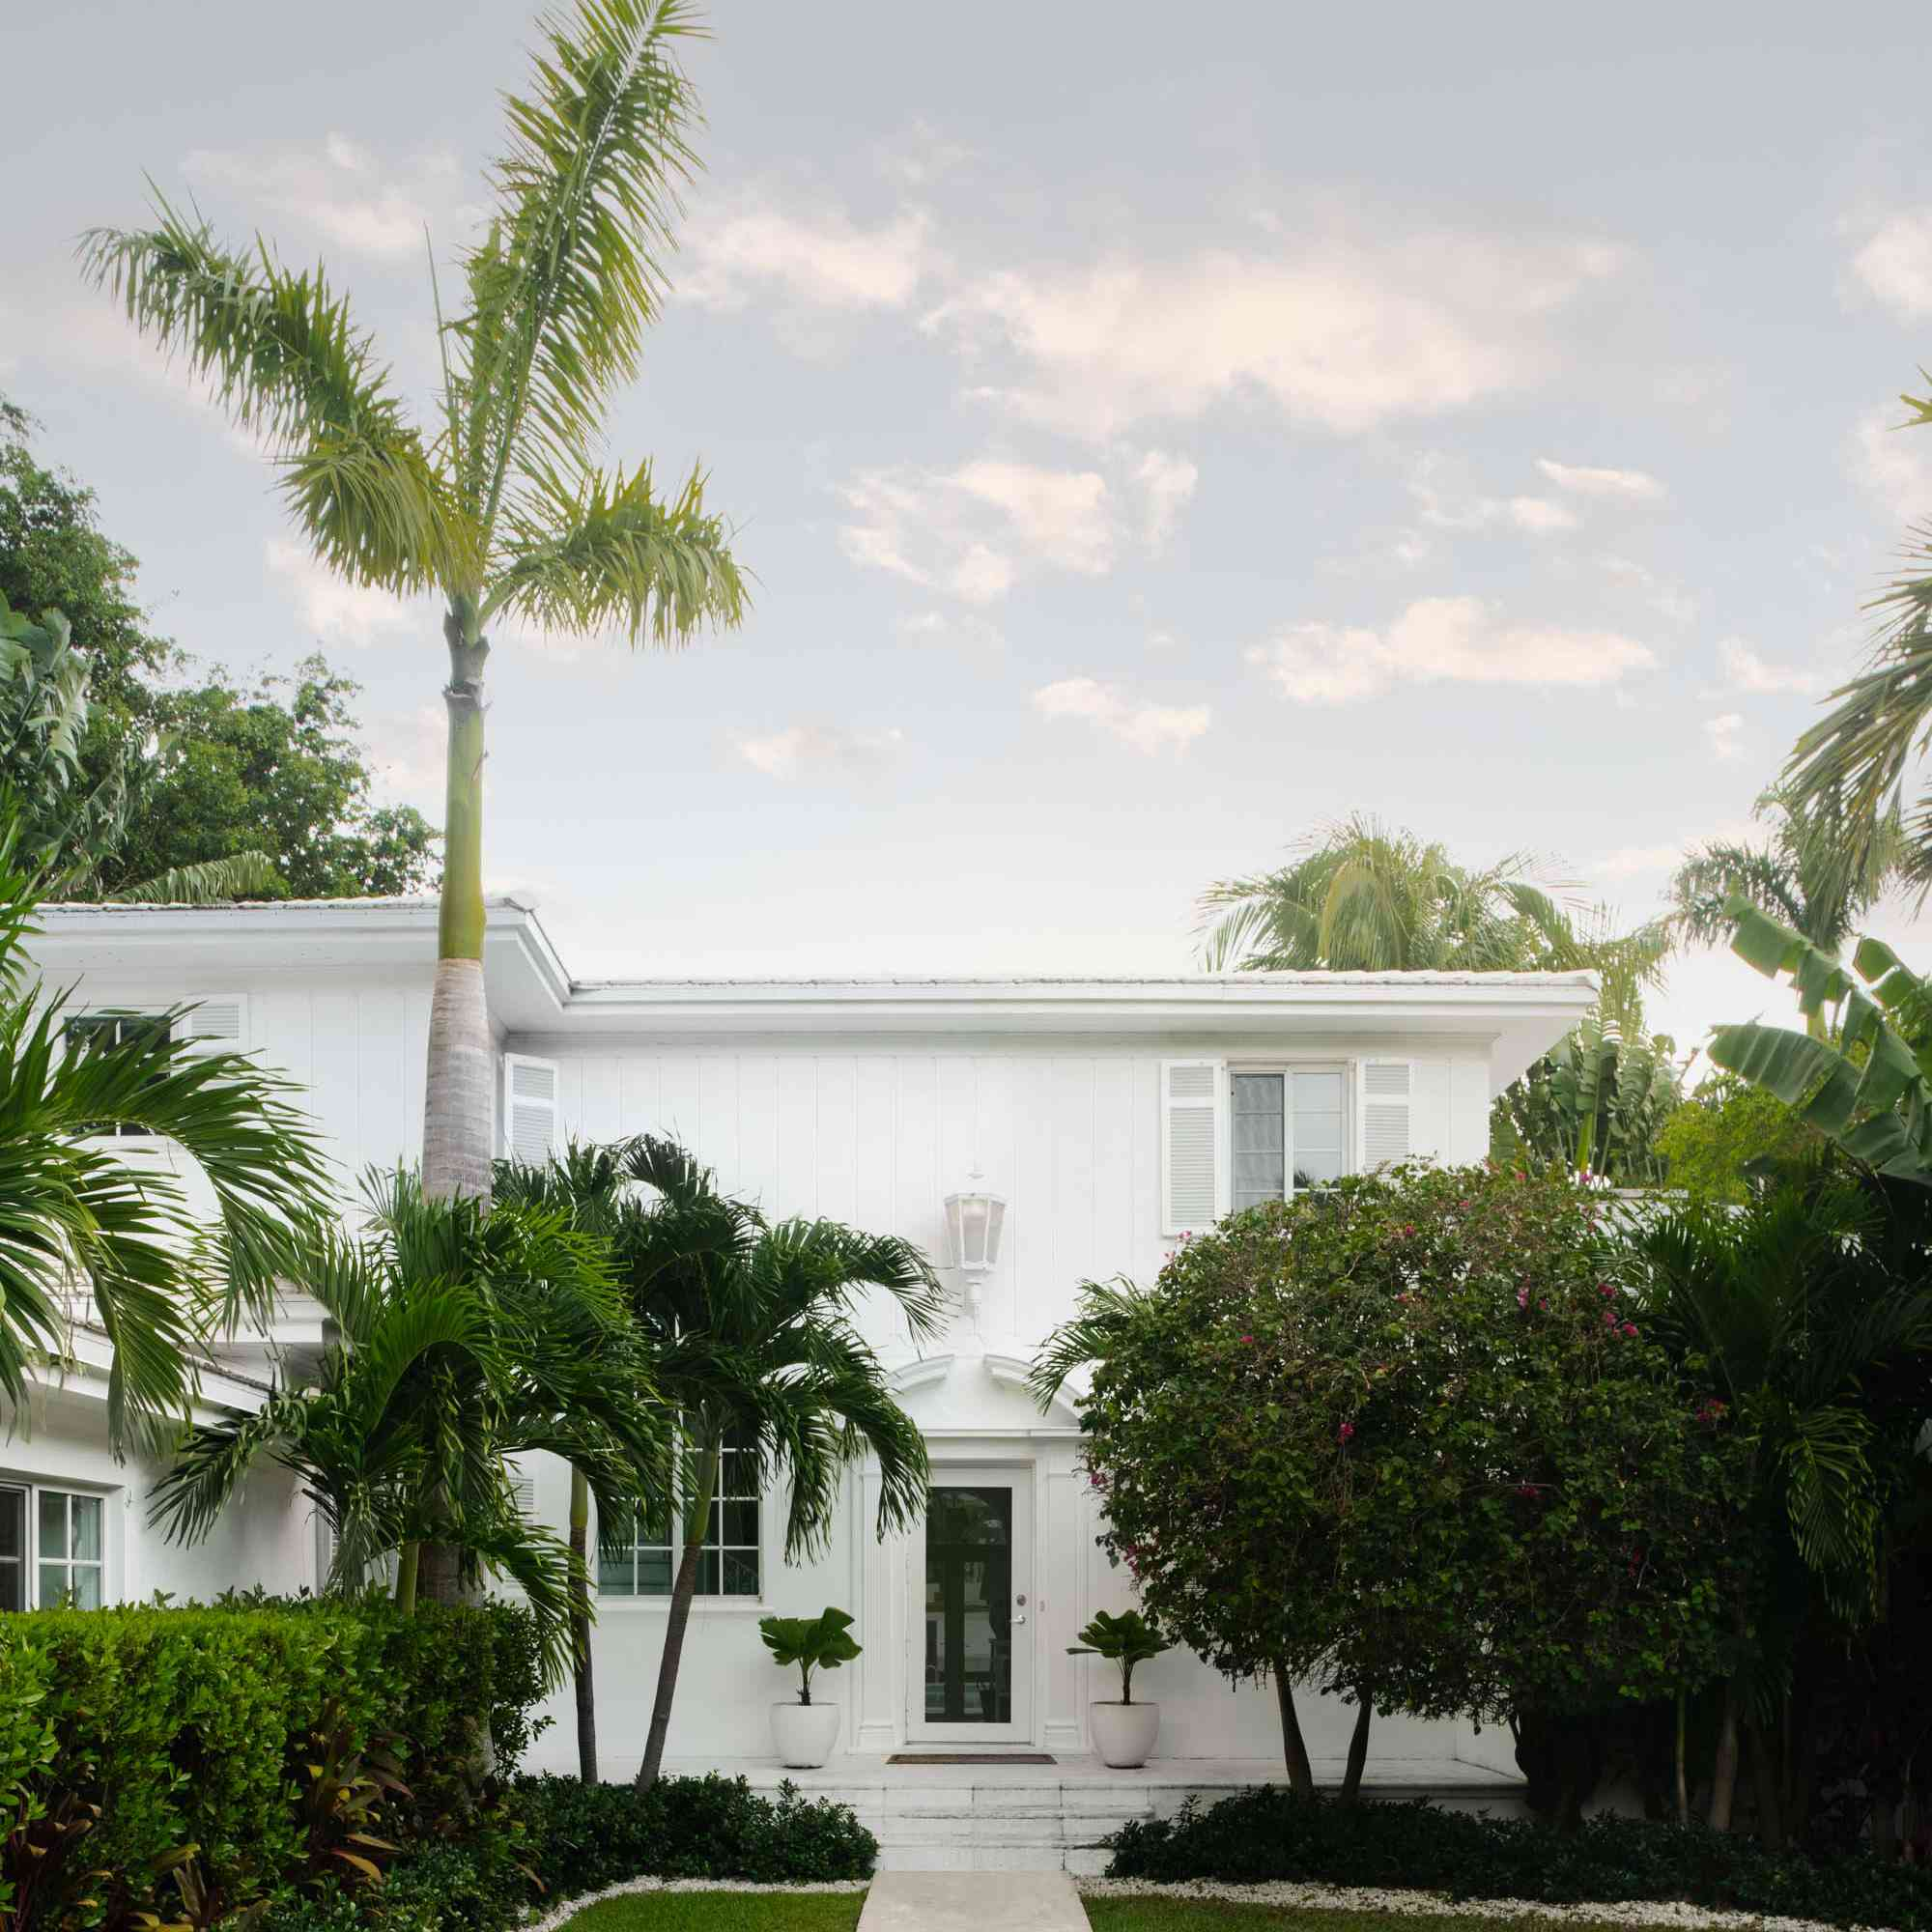 Exterior home with large palm tree in the shot.